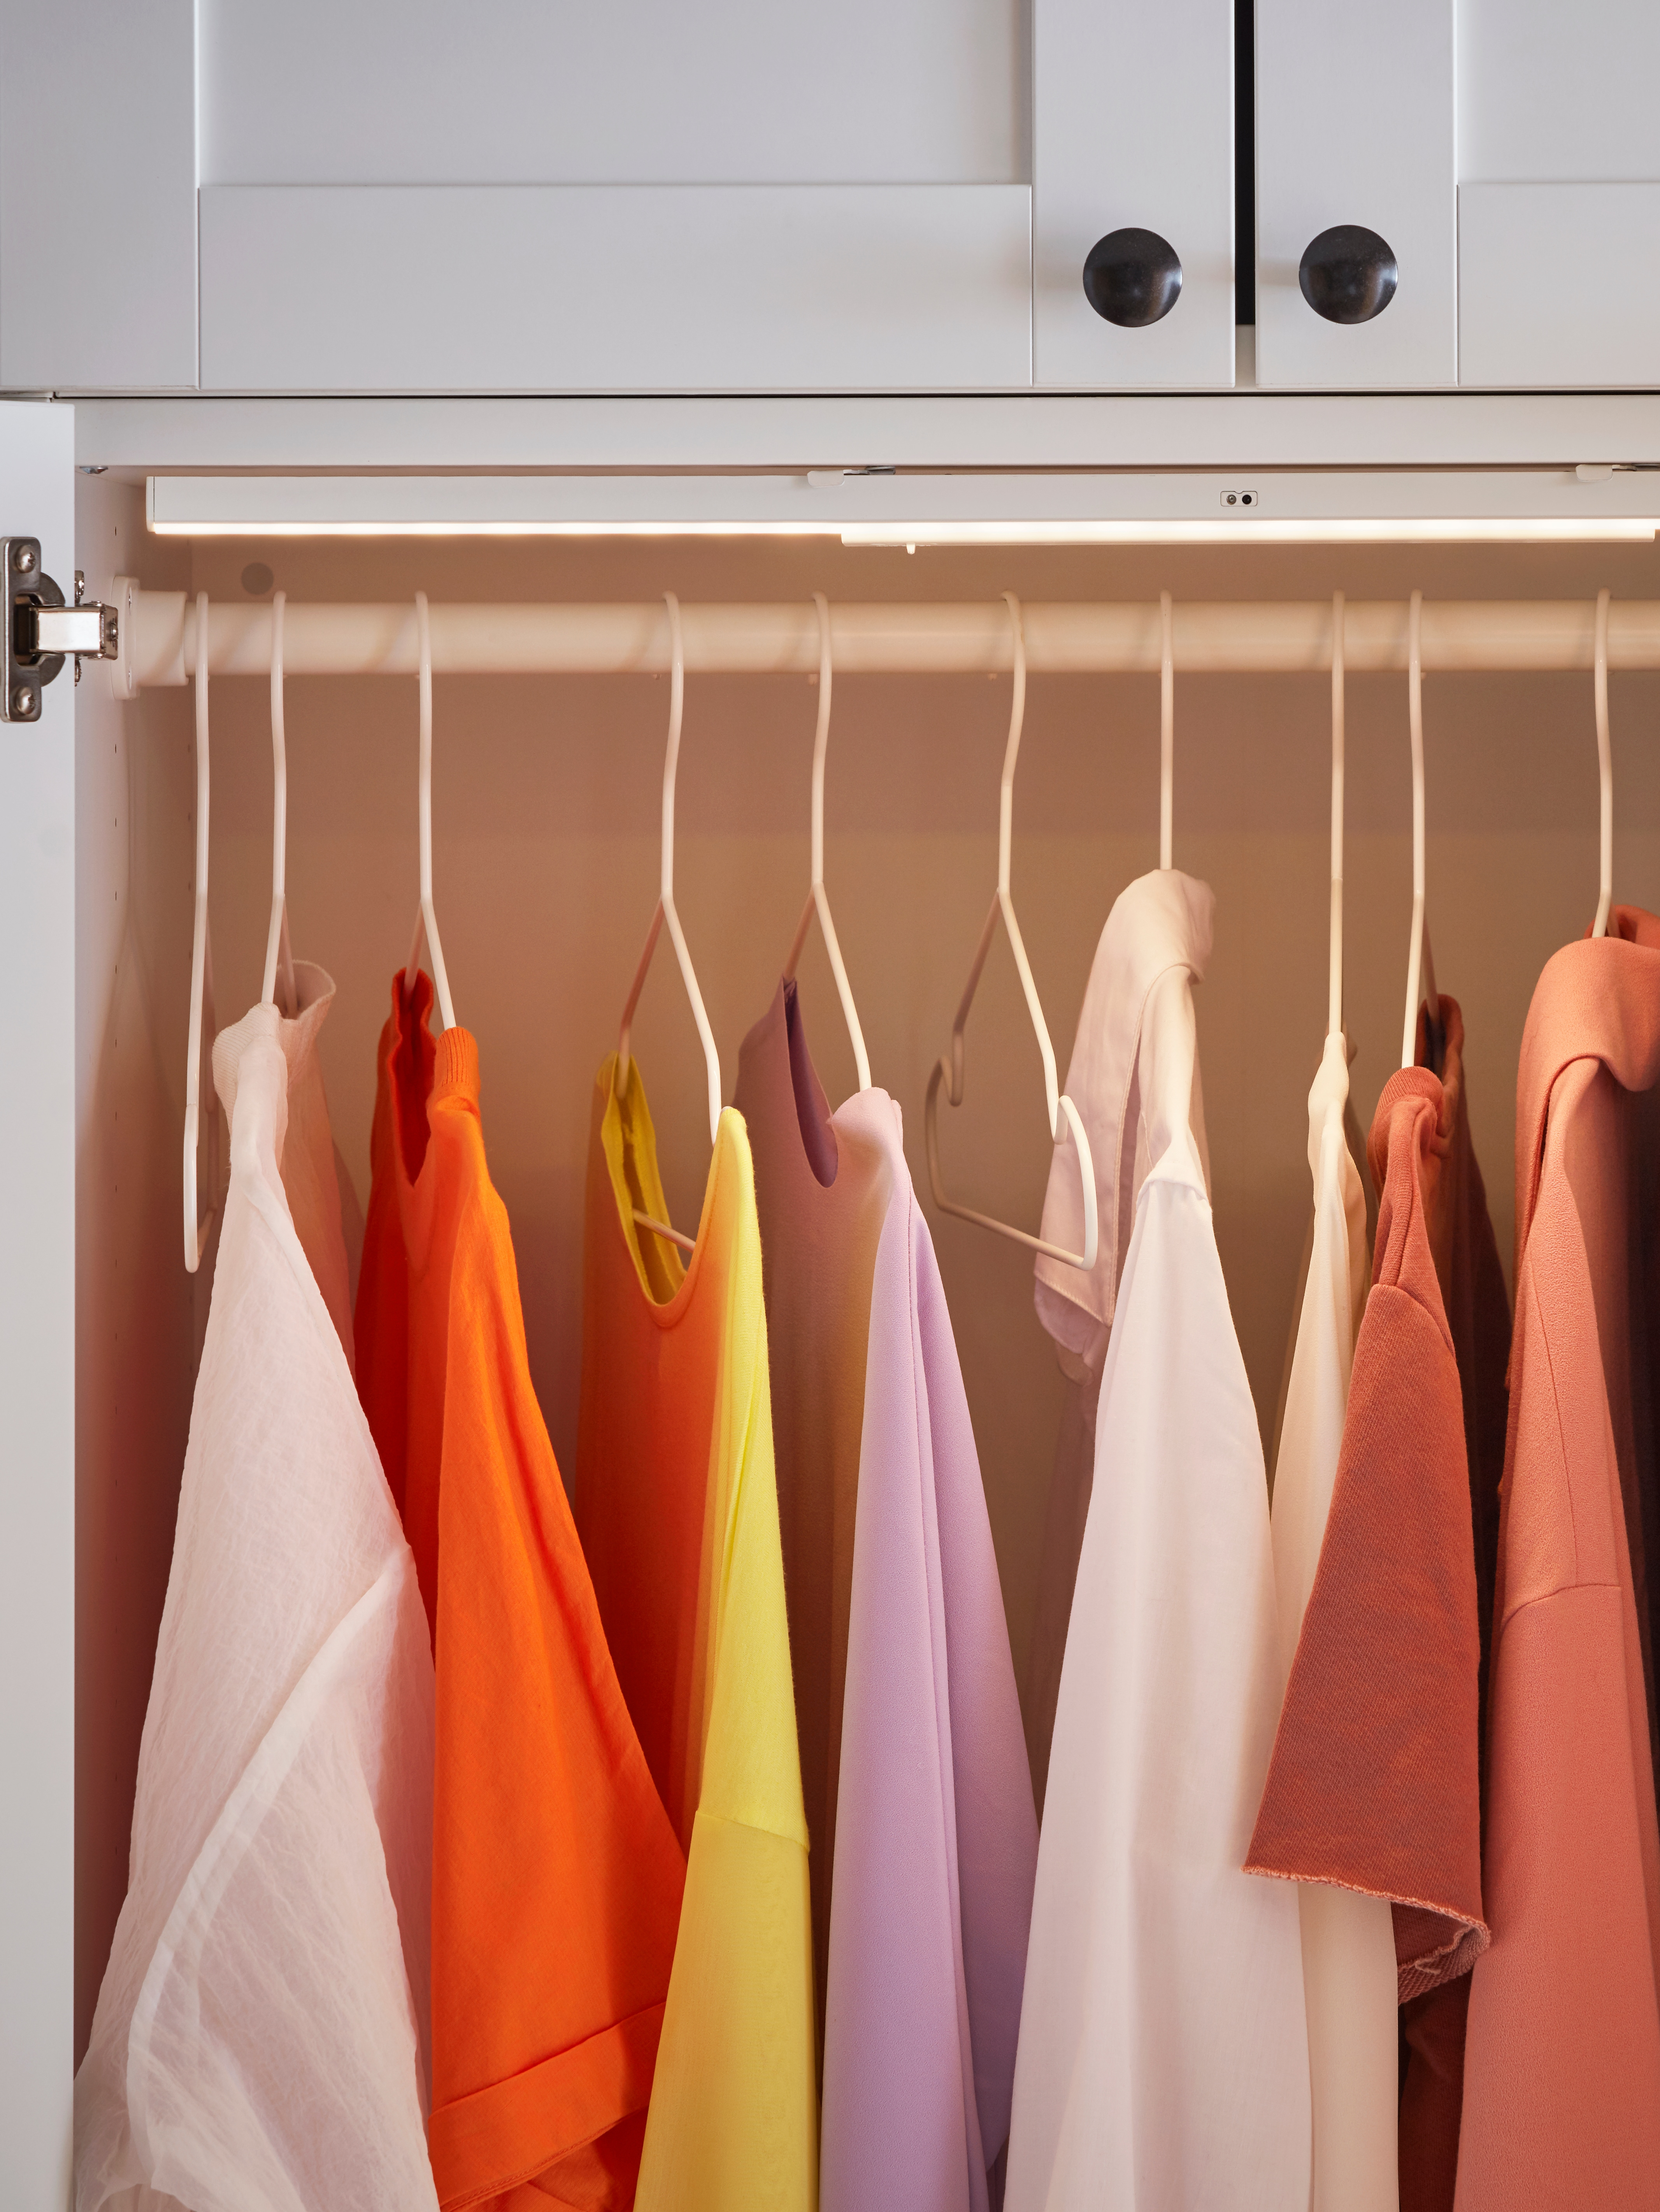 A wardrobe interior has a lighting strip above a clothes rail with colourful shirts on white, indoor/outdoor STAJLIG hangers.